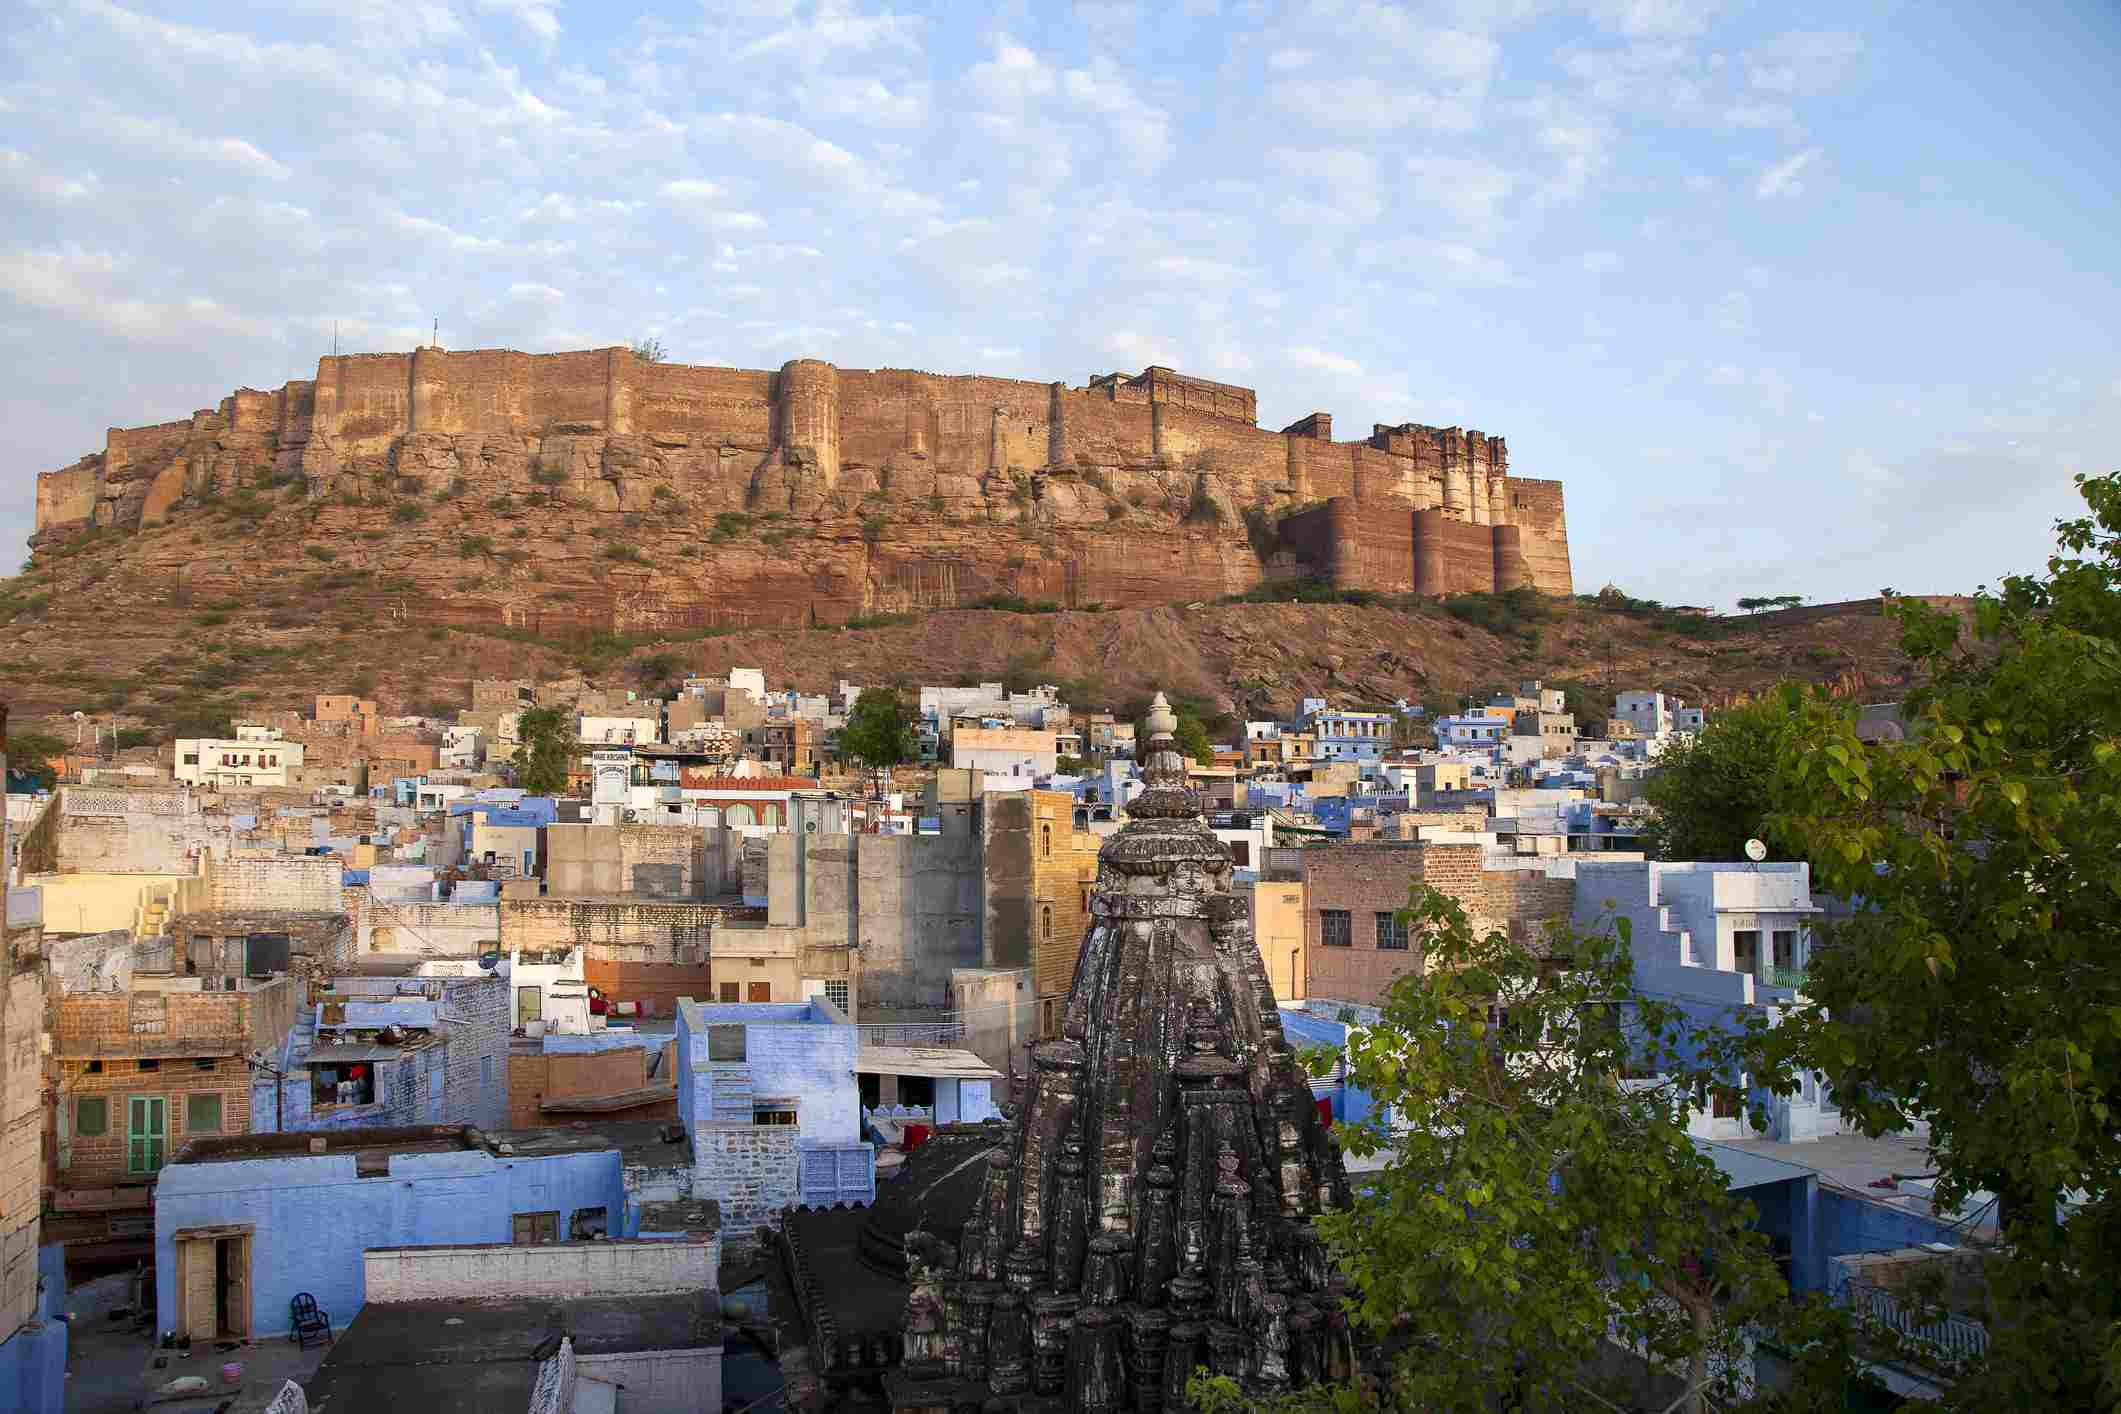 View of the blue houses and Meherangarh fort in Jodhpur